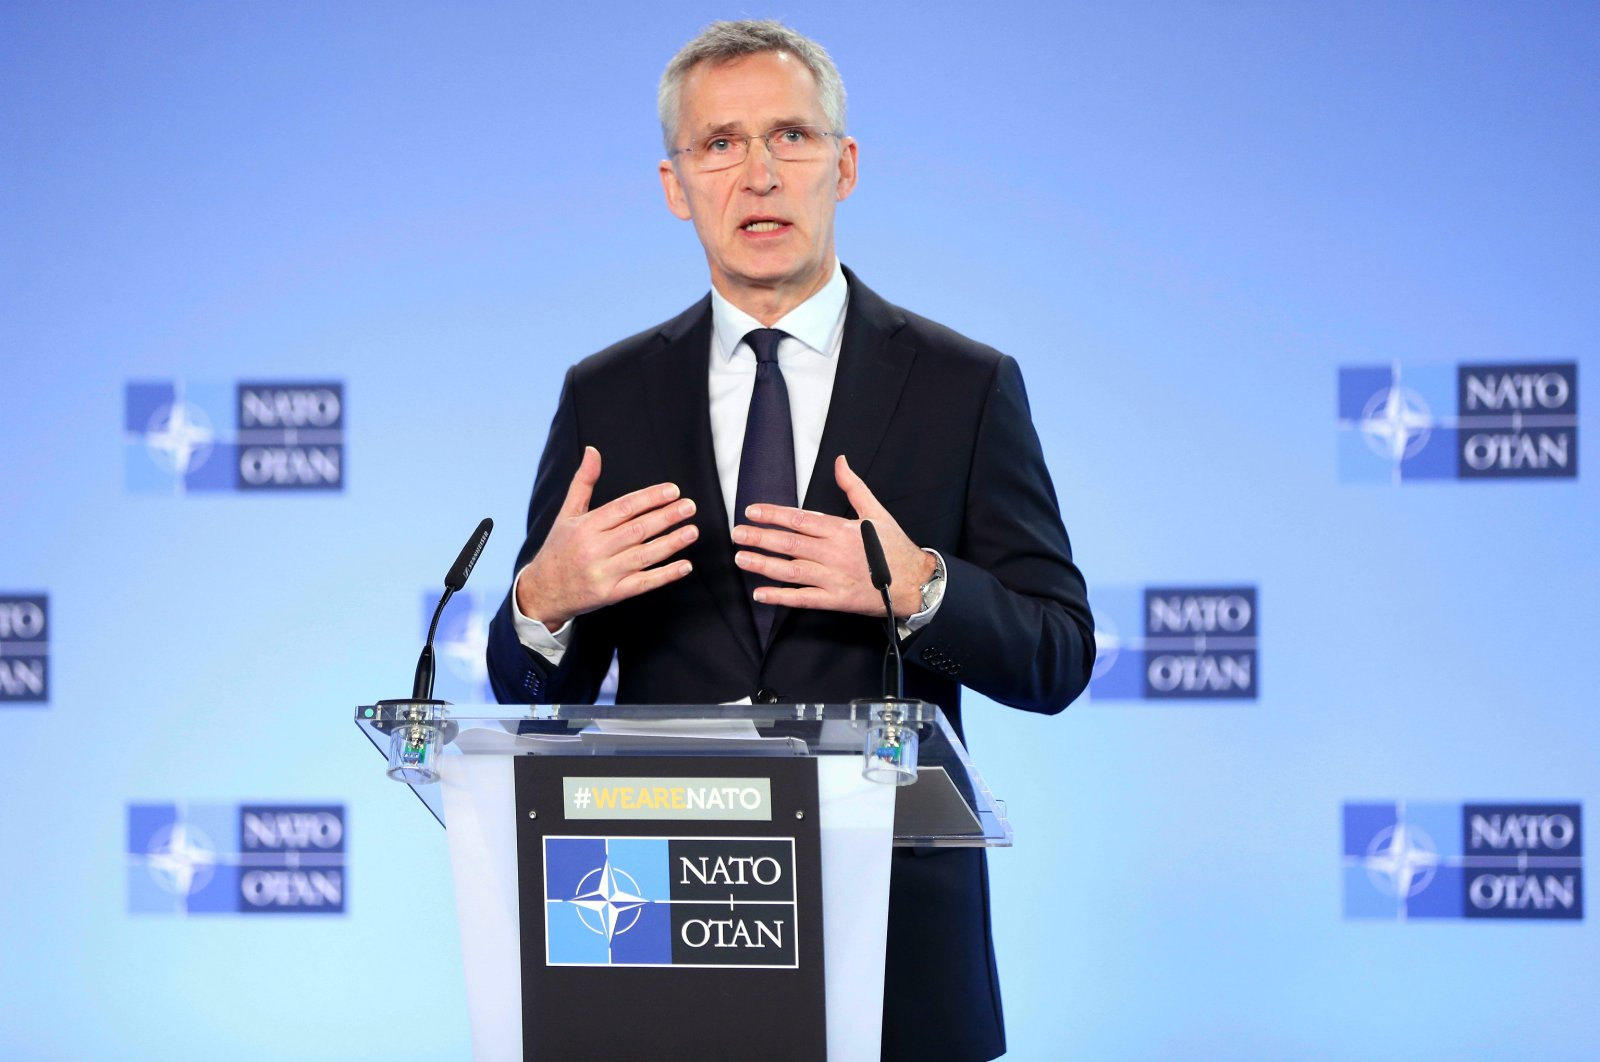 NATO Secretary-General Jens Stoltenberg during a news conference at NATO's headquarters in Brussels, Belgium, March 4, 2020. (AA Photo)